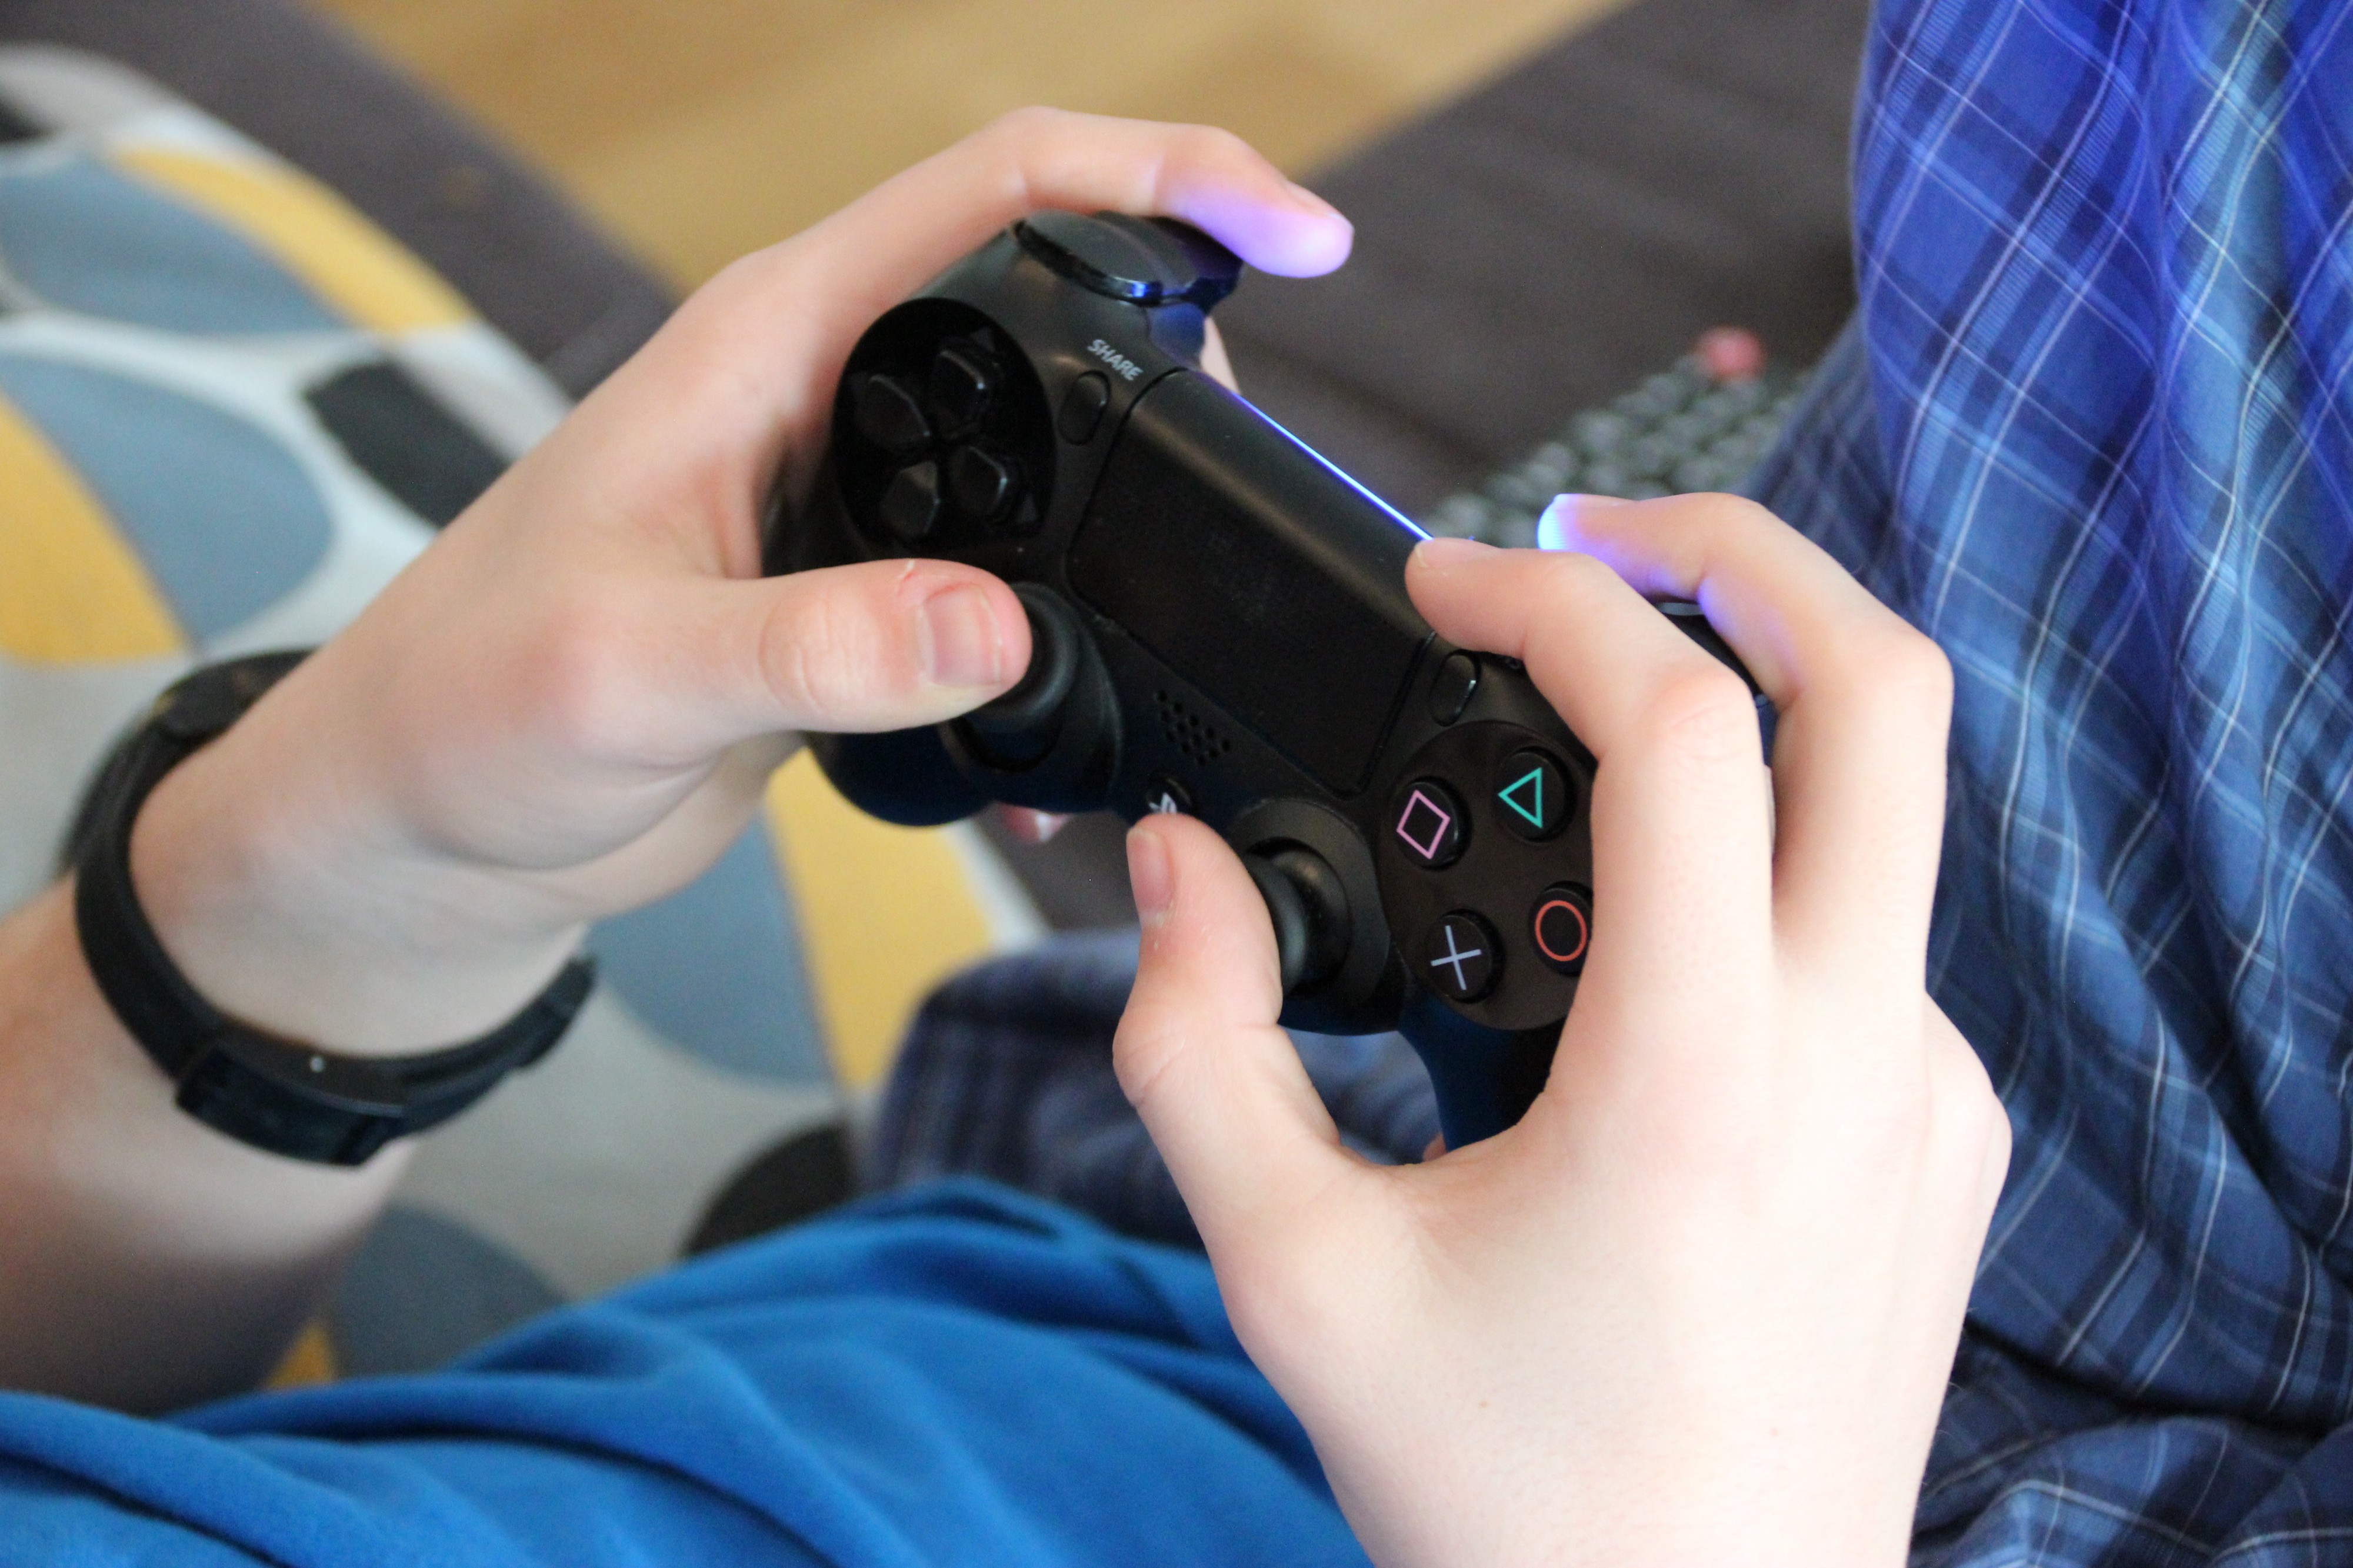 Male holding video game controller while wearing pajamas